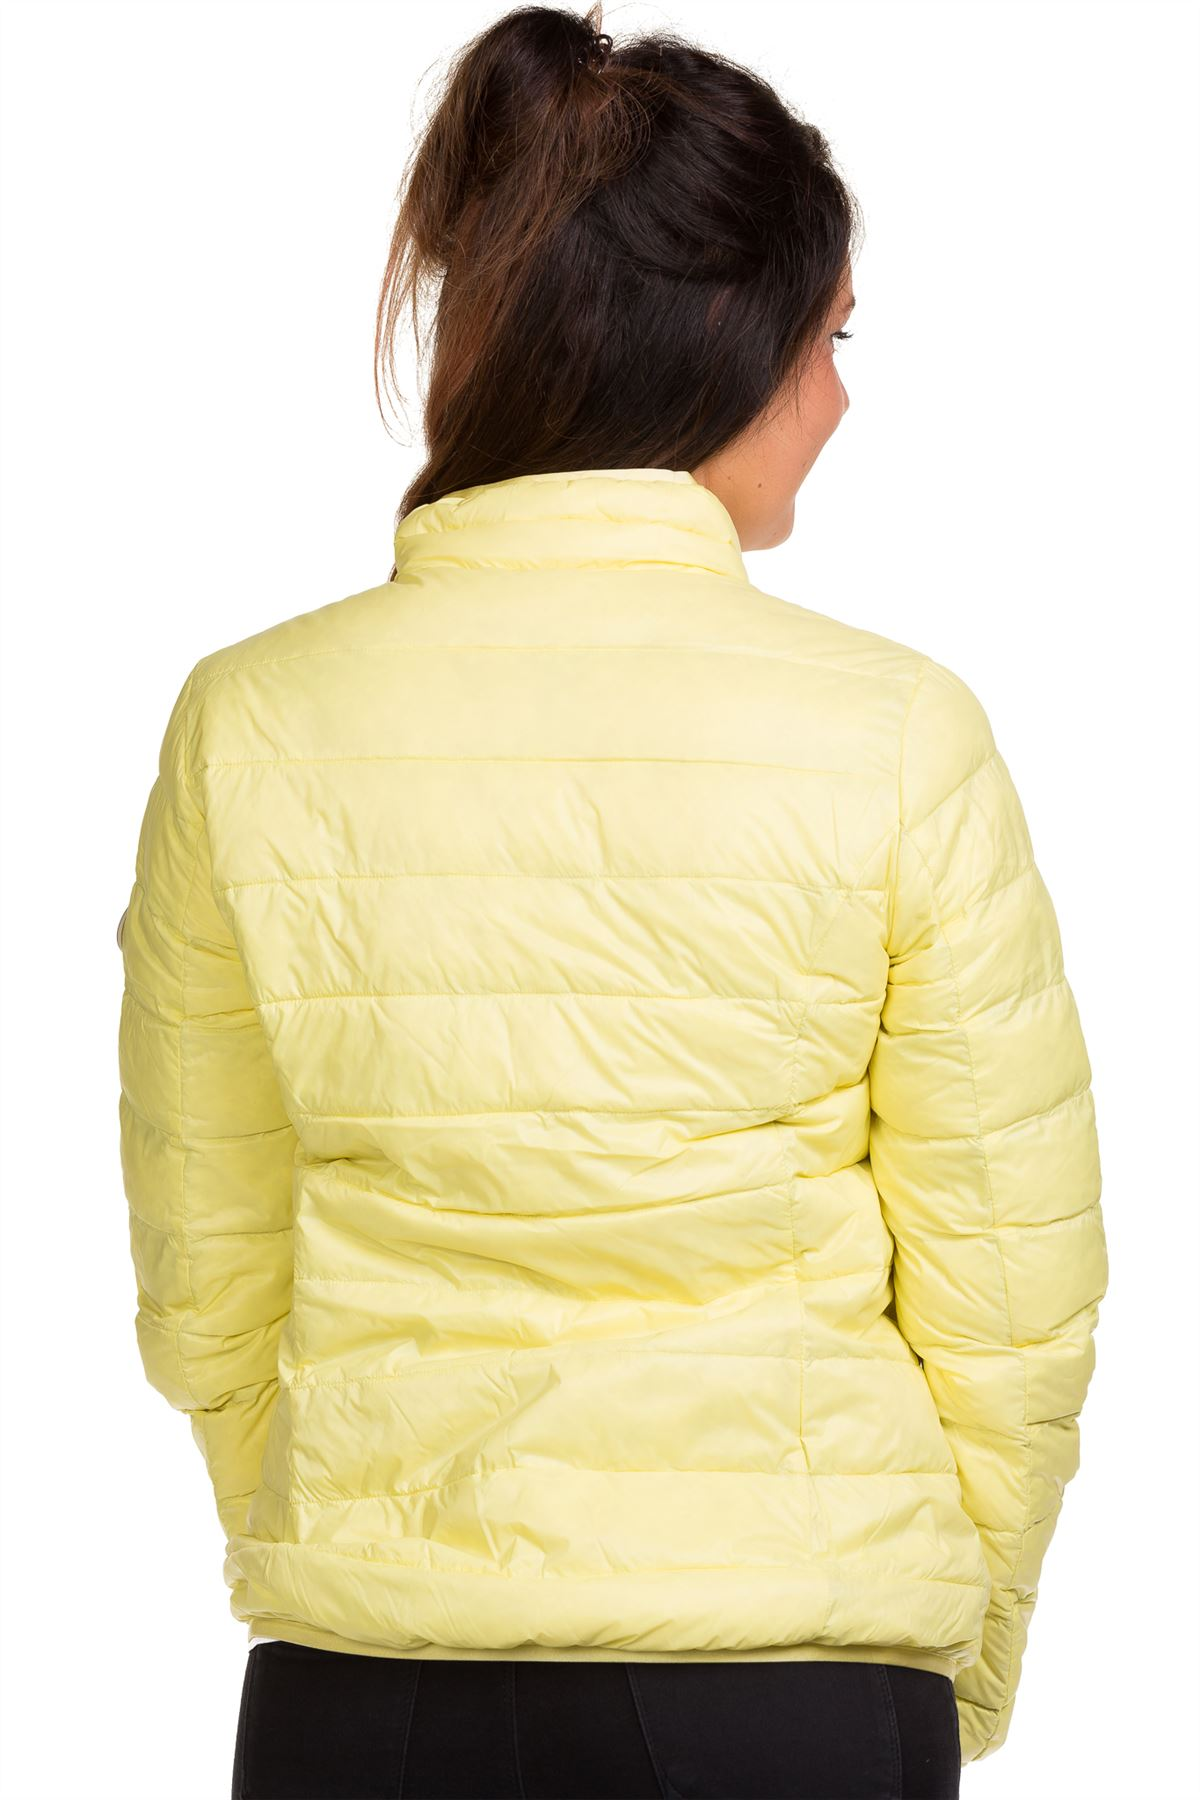 Ladies-Padded-Jacket-Down-Feather-Lining-Plain-Lightweight-Quilted-Floral-Coats thumbnail 14